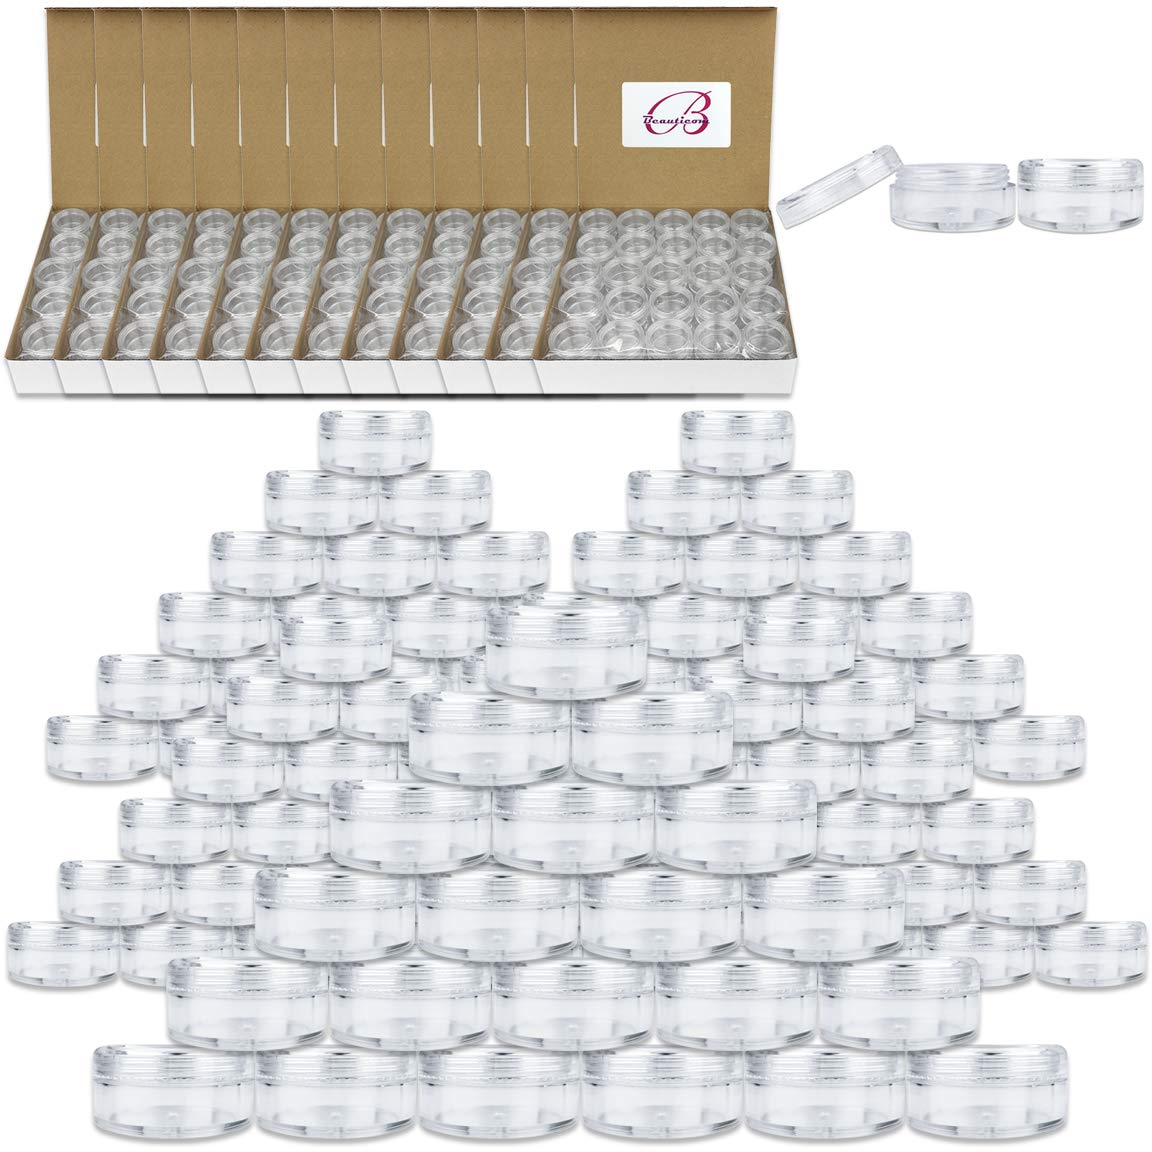 (2000 Pcs) Beauticom 5G/5ML Round Clear Jars with Screw Cap Lids for Cosmetics, Medication, Lab and Field Research Samples, Beauty and Health Aids - BPA Free by Beauticom